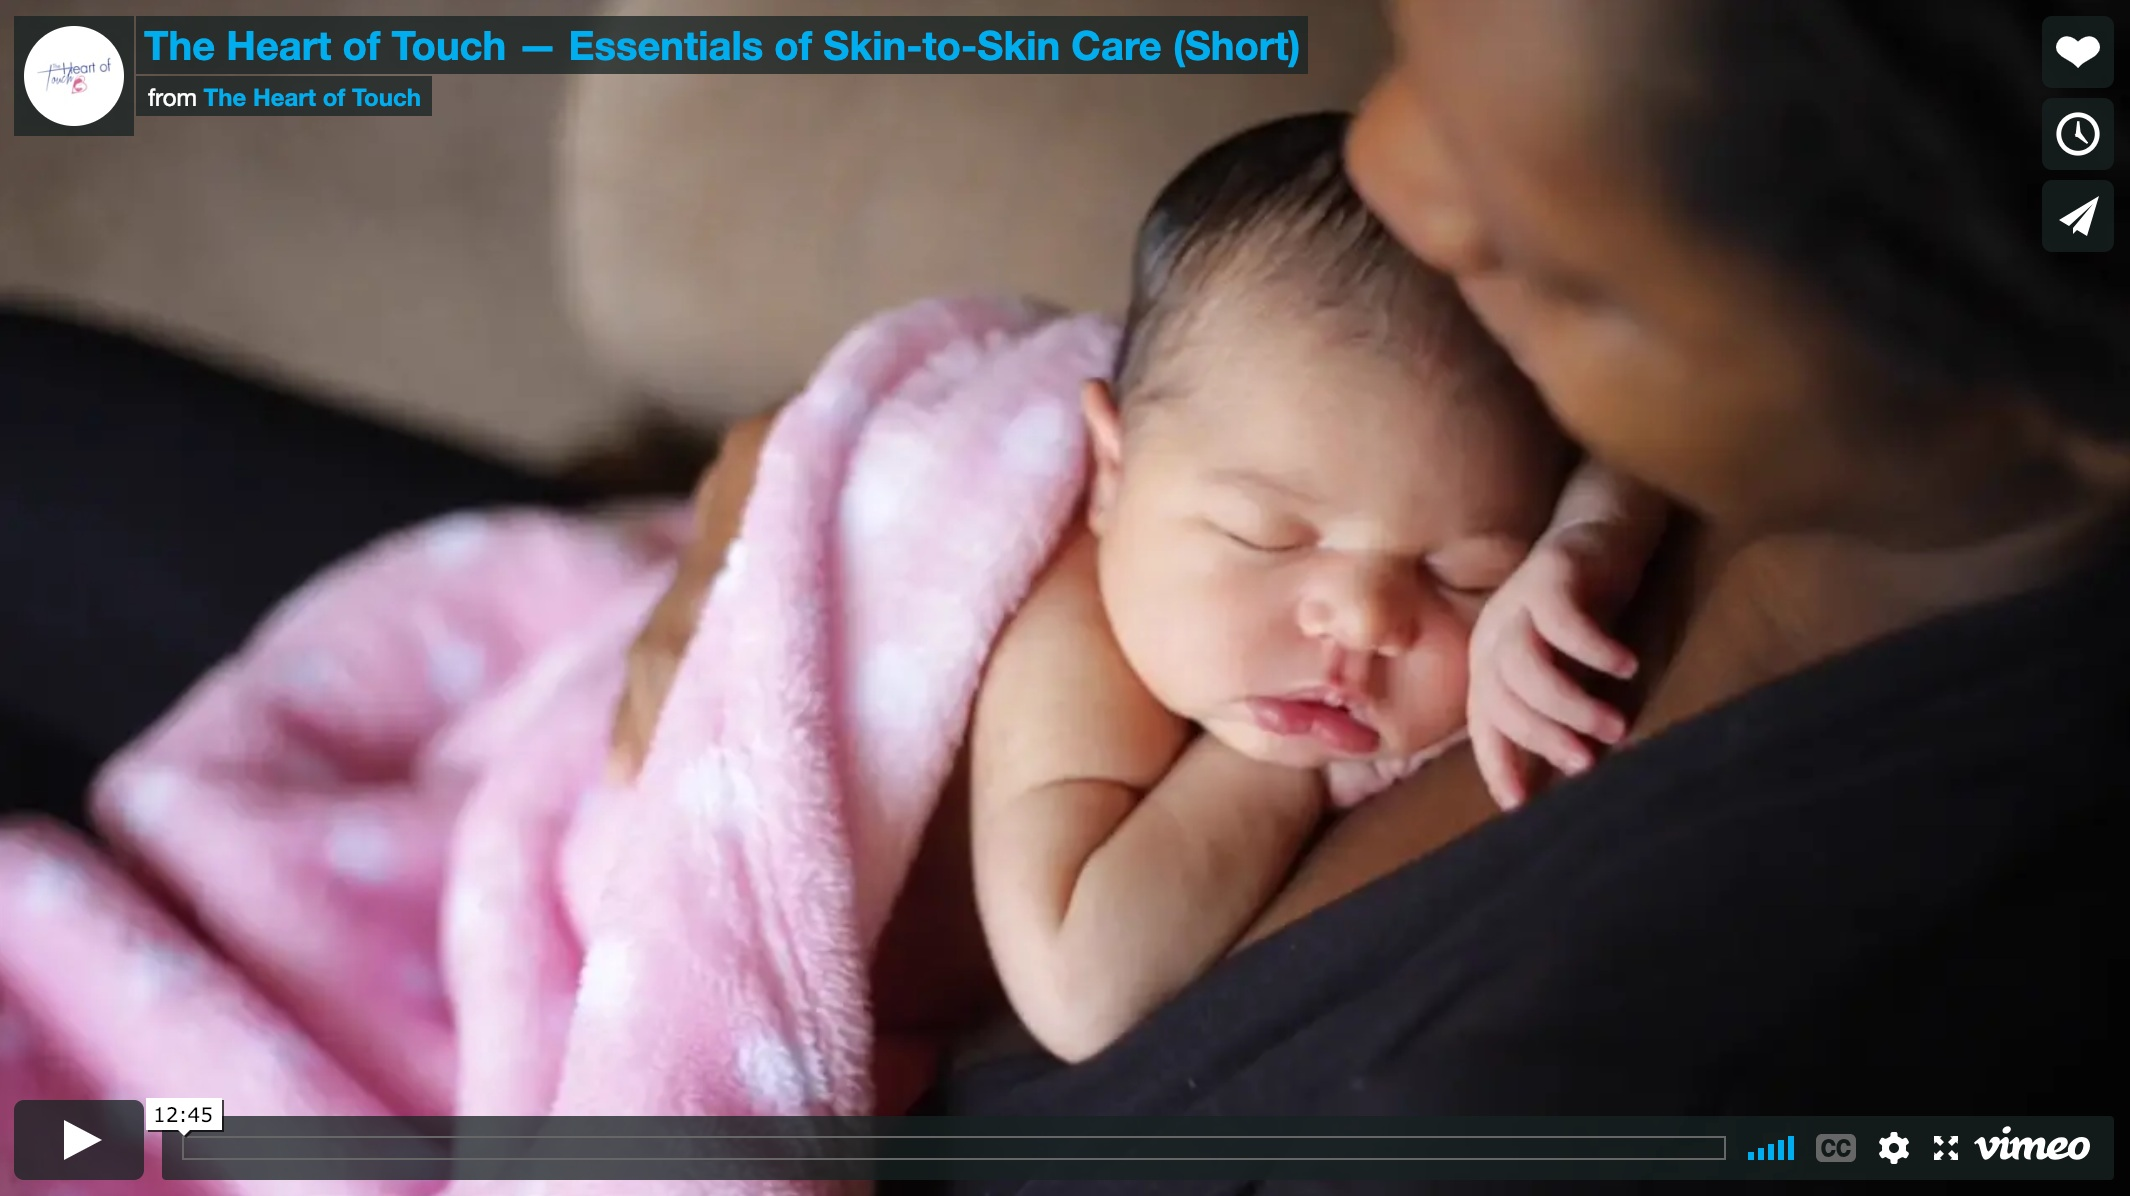 heart of touch film - Angie Chisholm, CNM, produced an educational film & teaching series called the Heart of Touch about the benefits of skin-to-skin after birth. Useful in Centering groups, childbirth education, and pre-discharge settings.